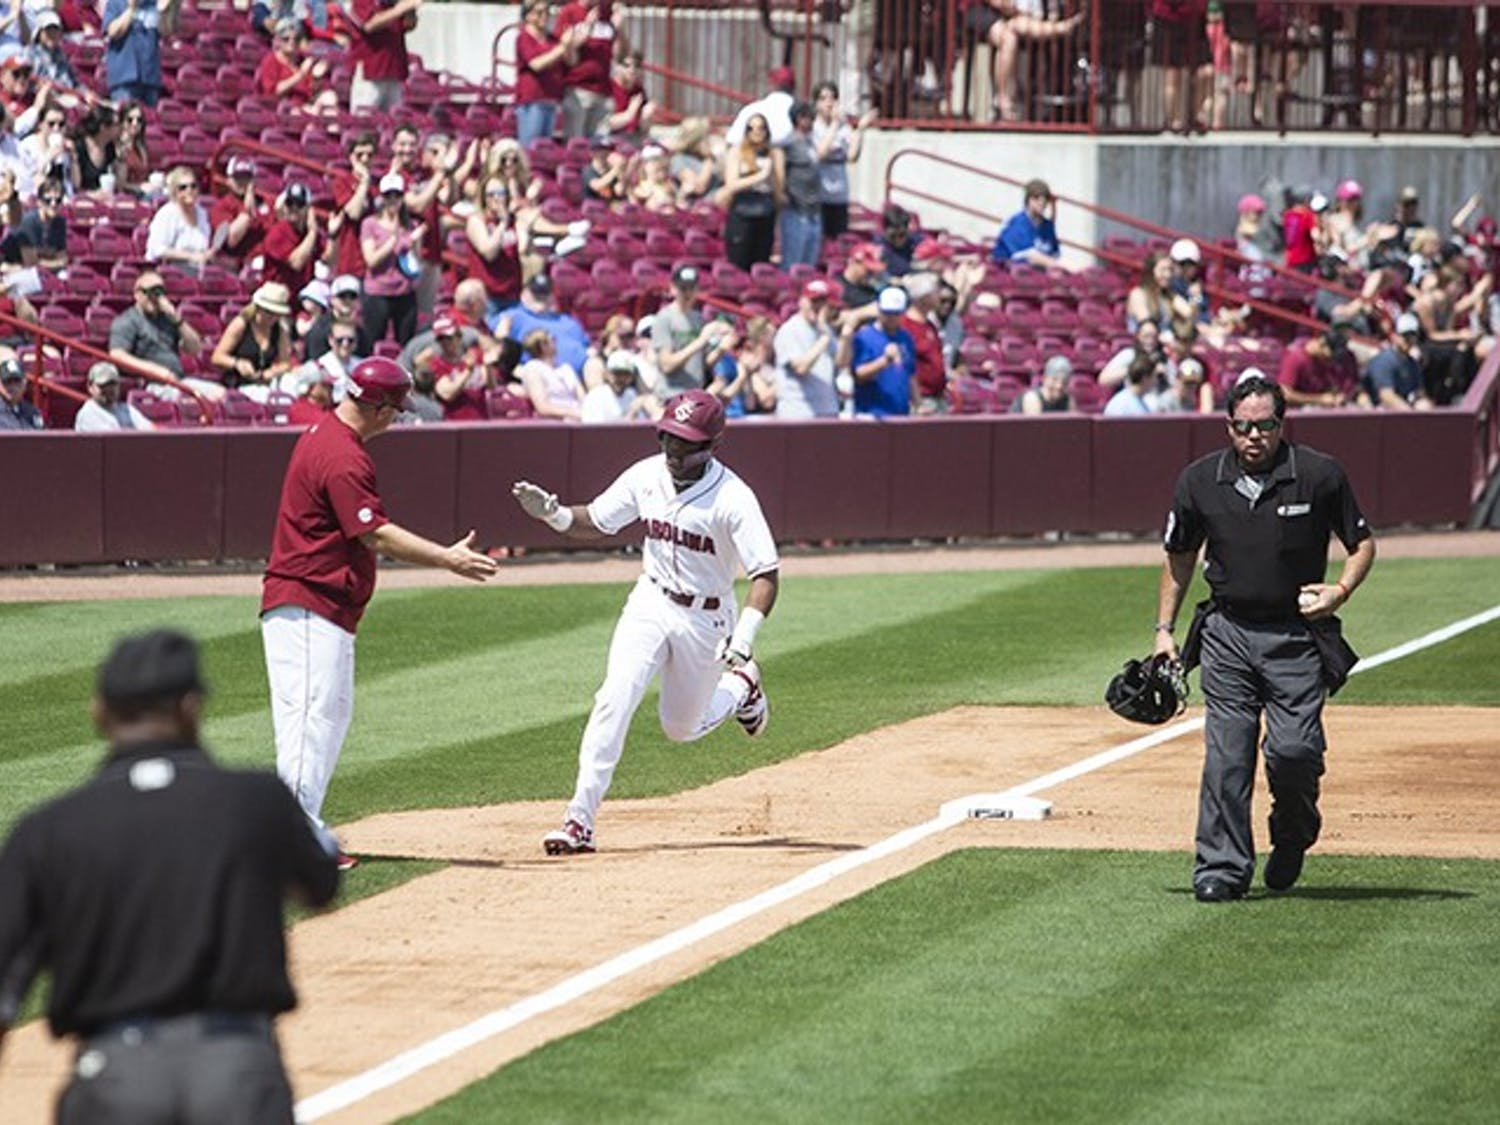 Freshman Ian Jenkins rounds third following a home-run hit during the Saturday game against Auburn at Founders Park.